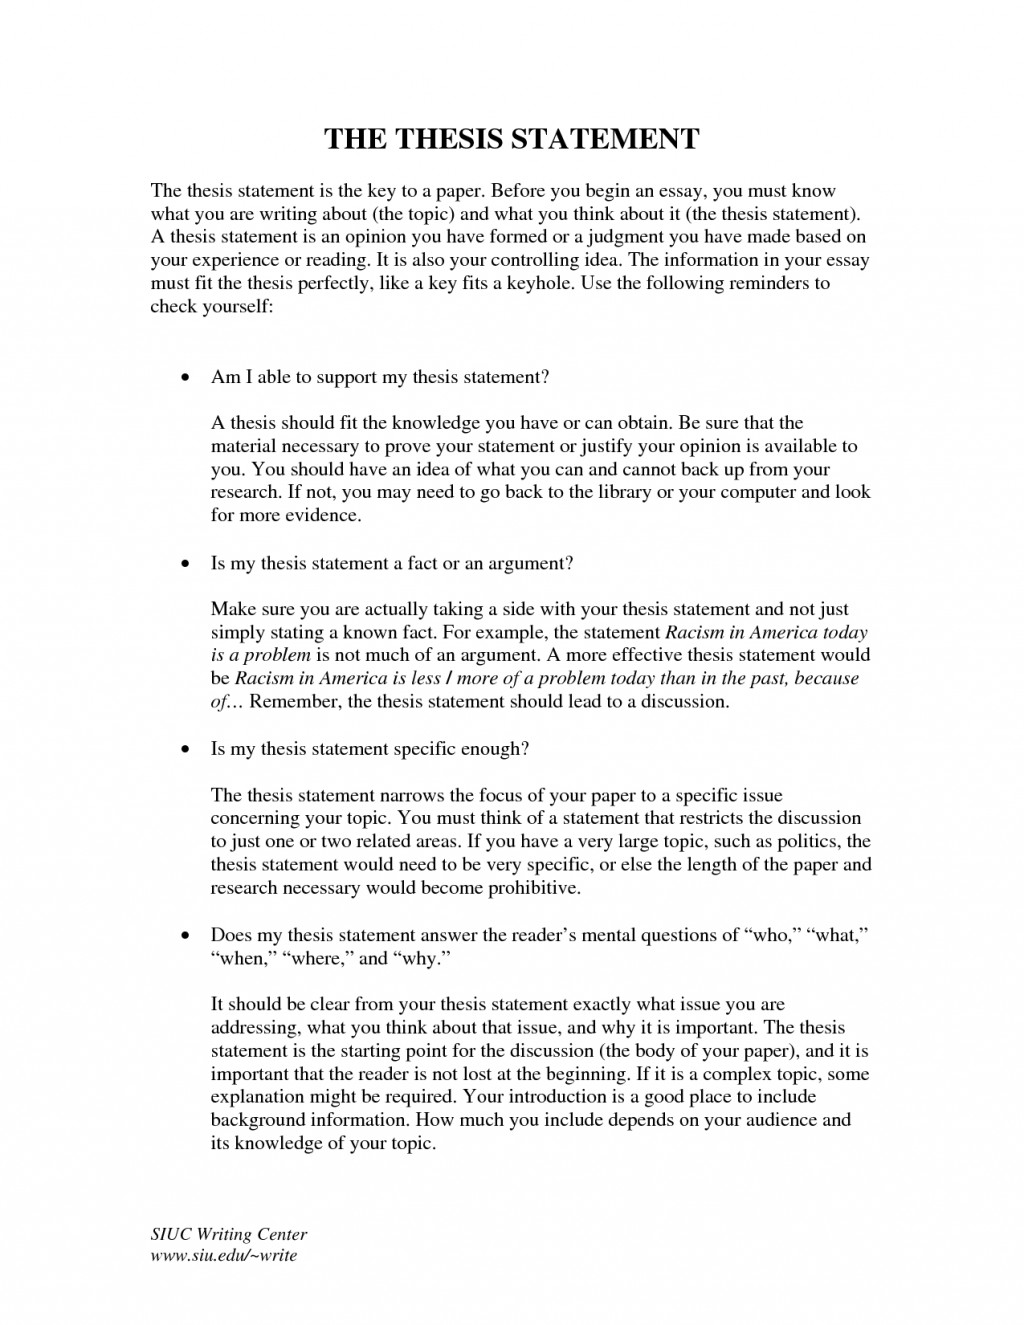 011 Where Does Thesis Statement Go Ttvwrzdh How To Write For Research Unique Paper A Pdf Apa In Format Large